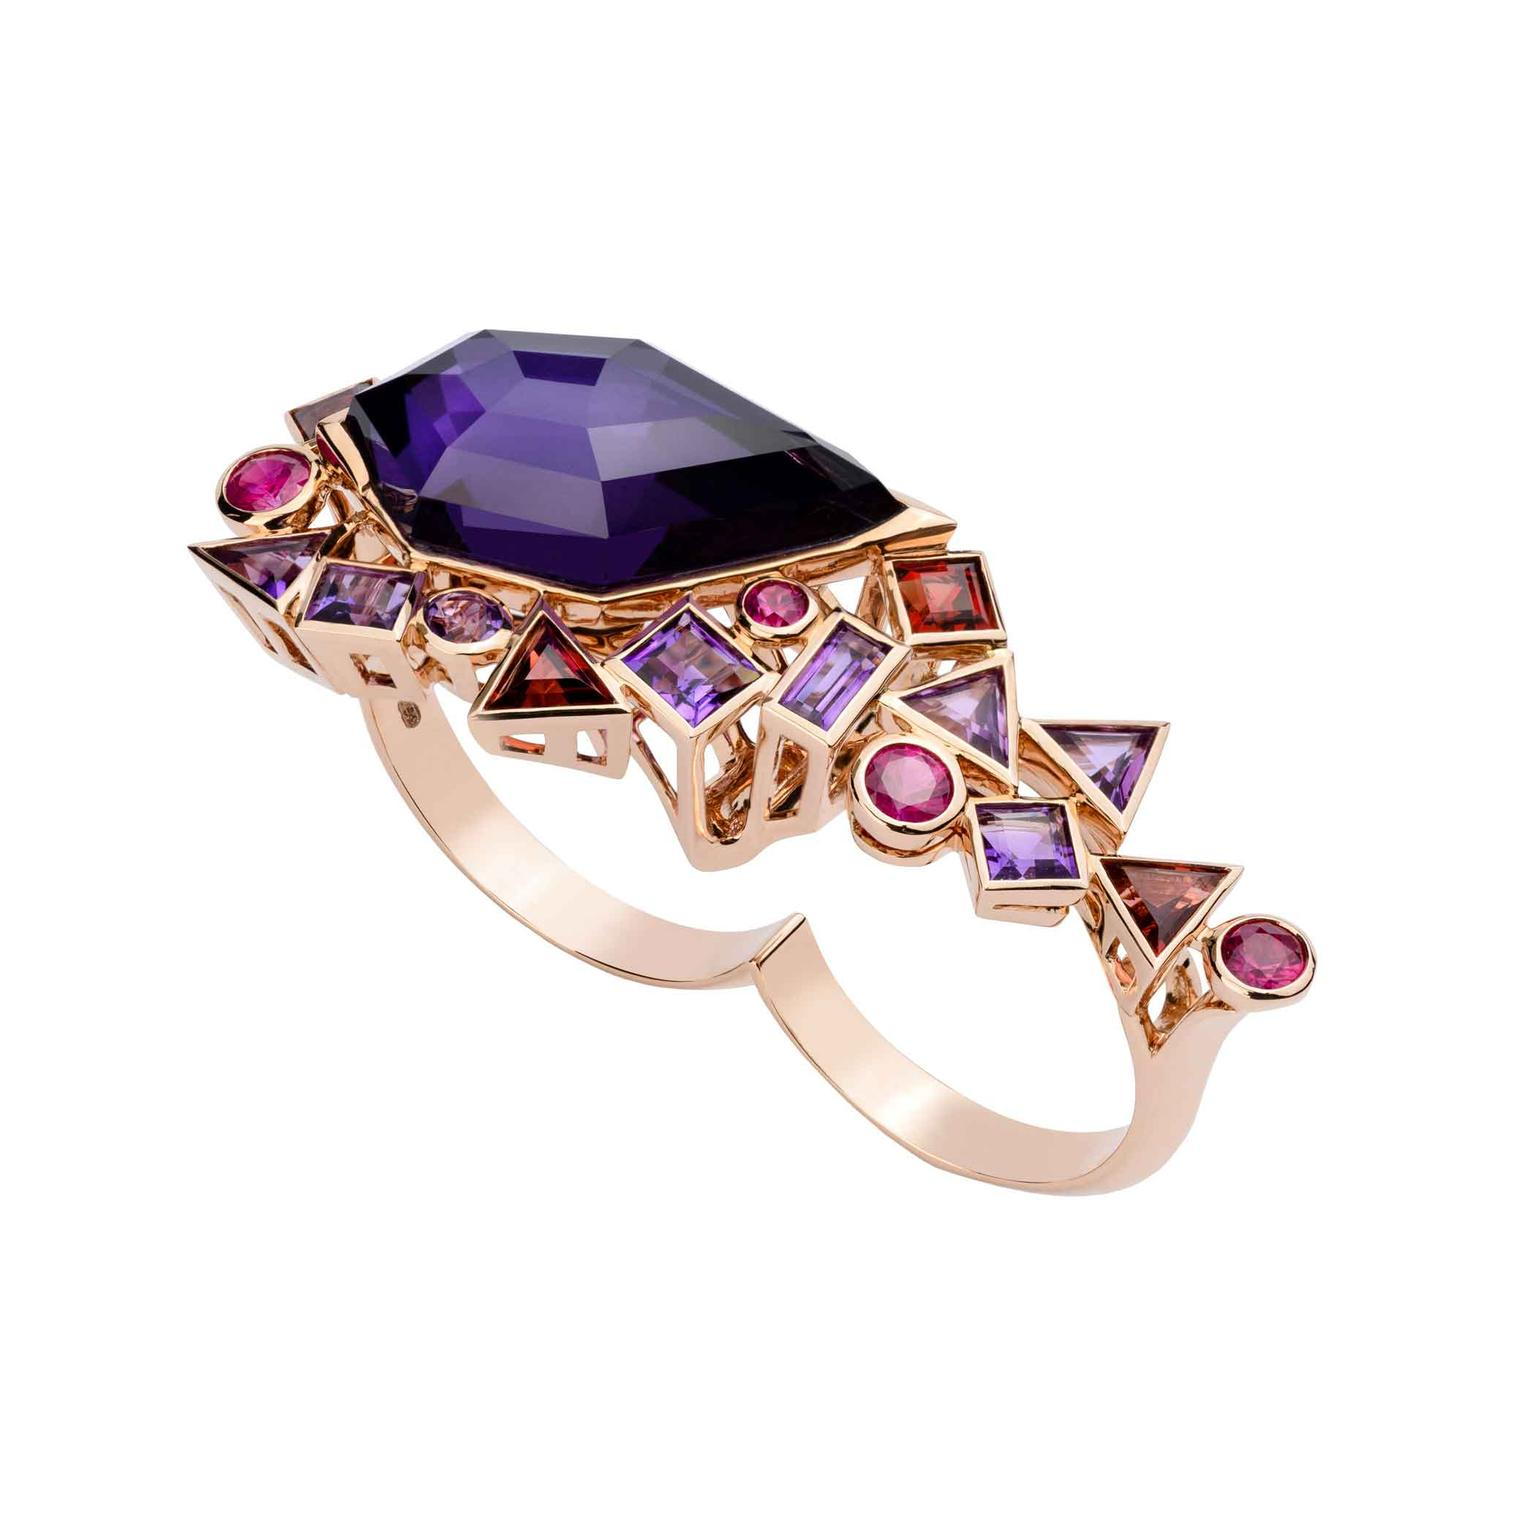 Stephen Webster rose gold ring_zoom